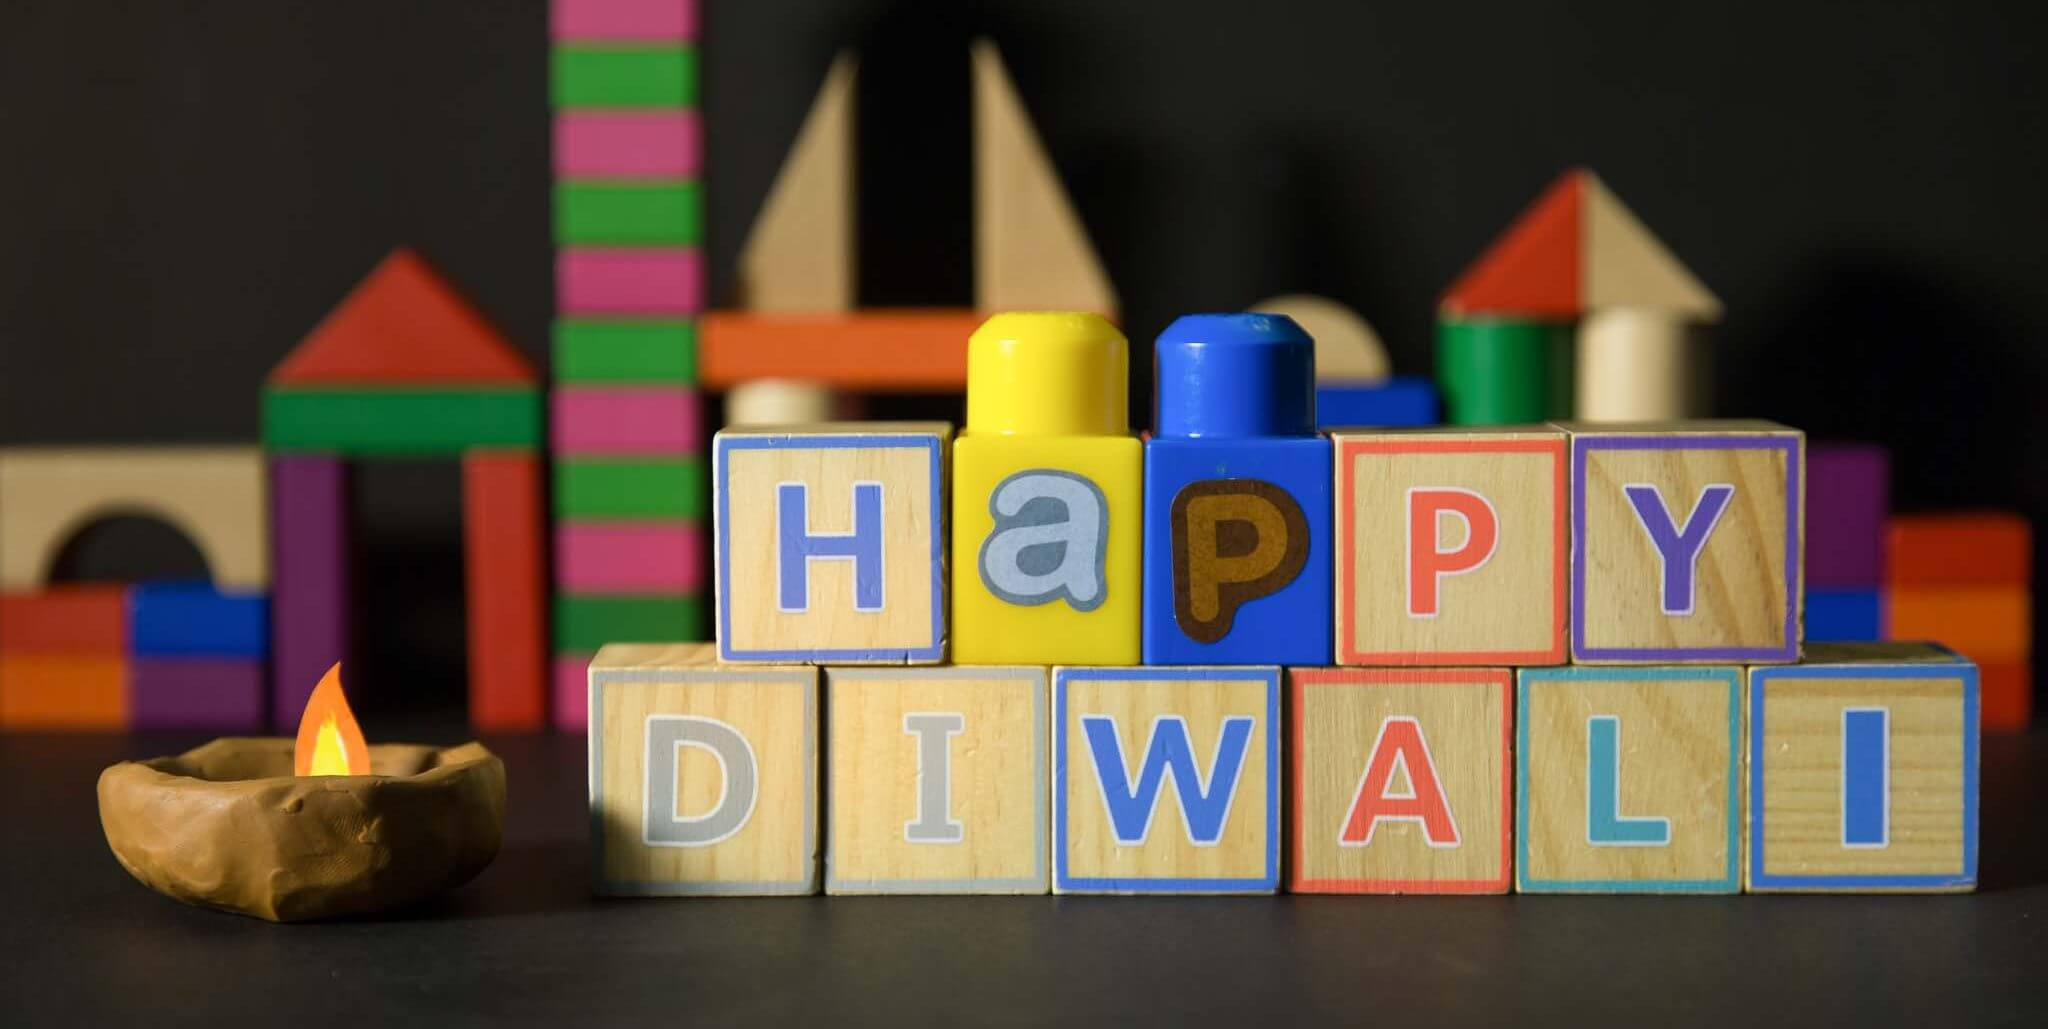 Stop motion Diwali greeting short film